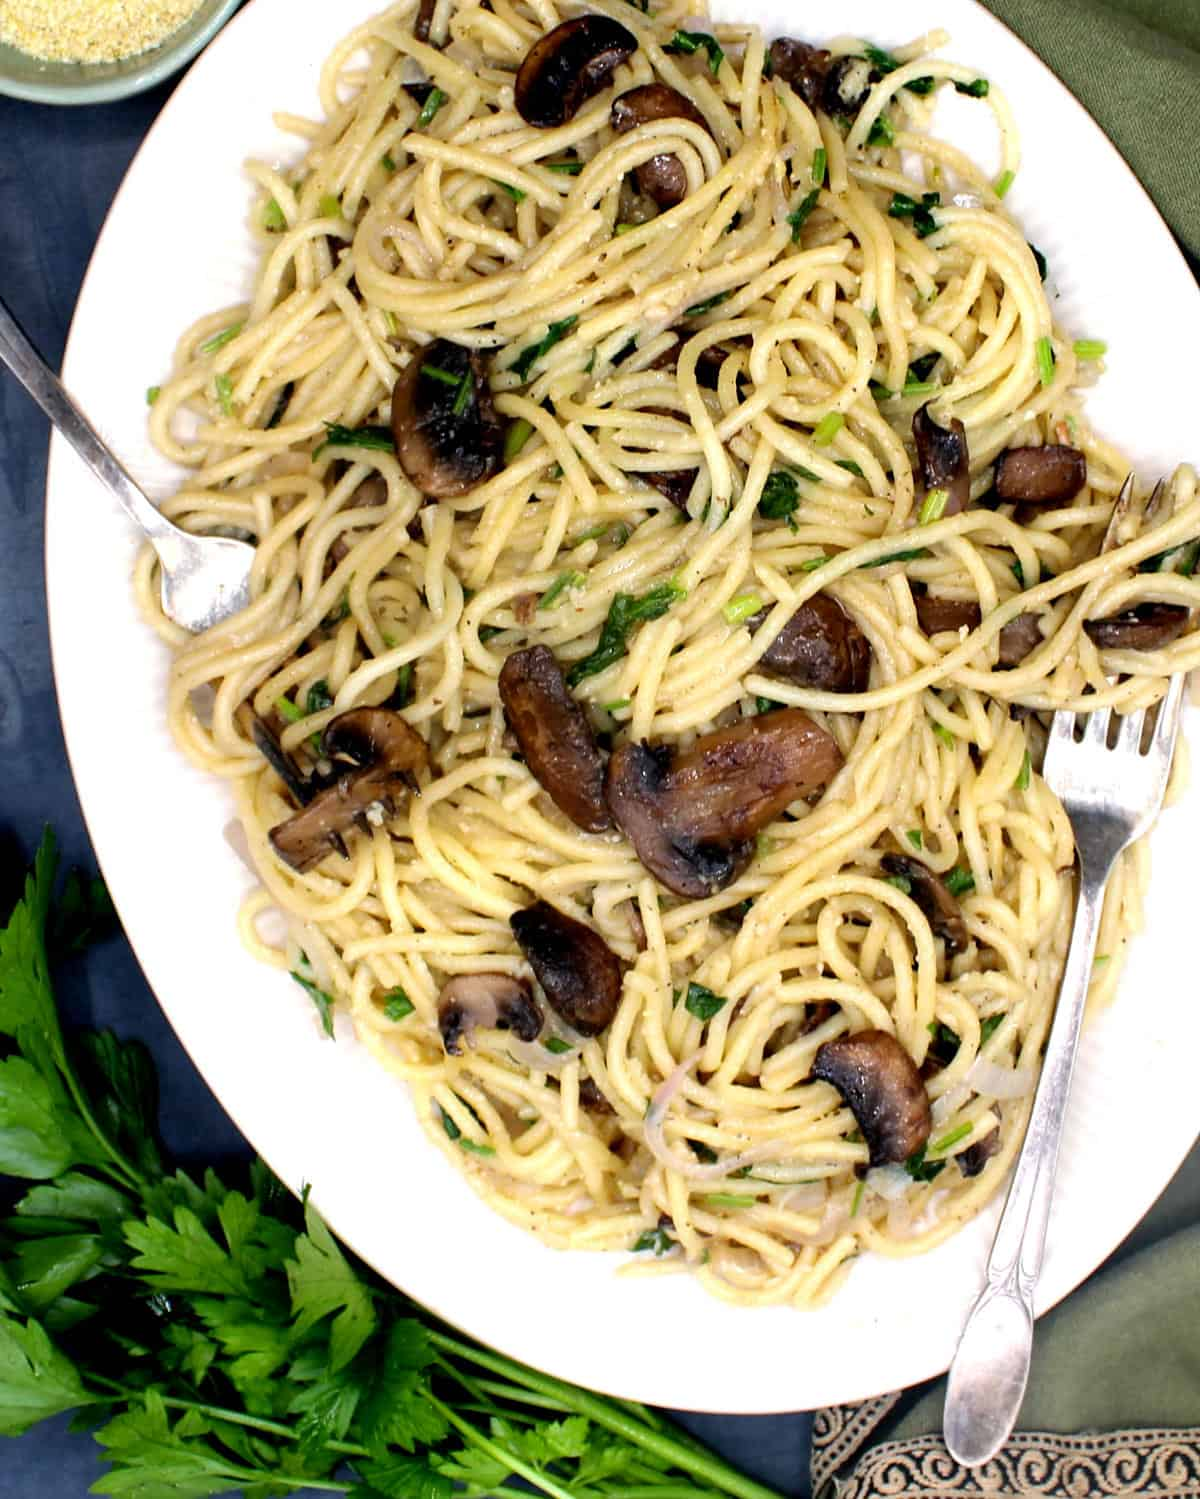 Overhead closeup shot of a large white platter filled with vegan pasta with mushrooms. Also pictured are forks and a bunch of parsley.